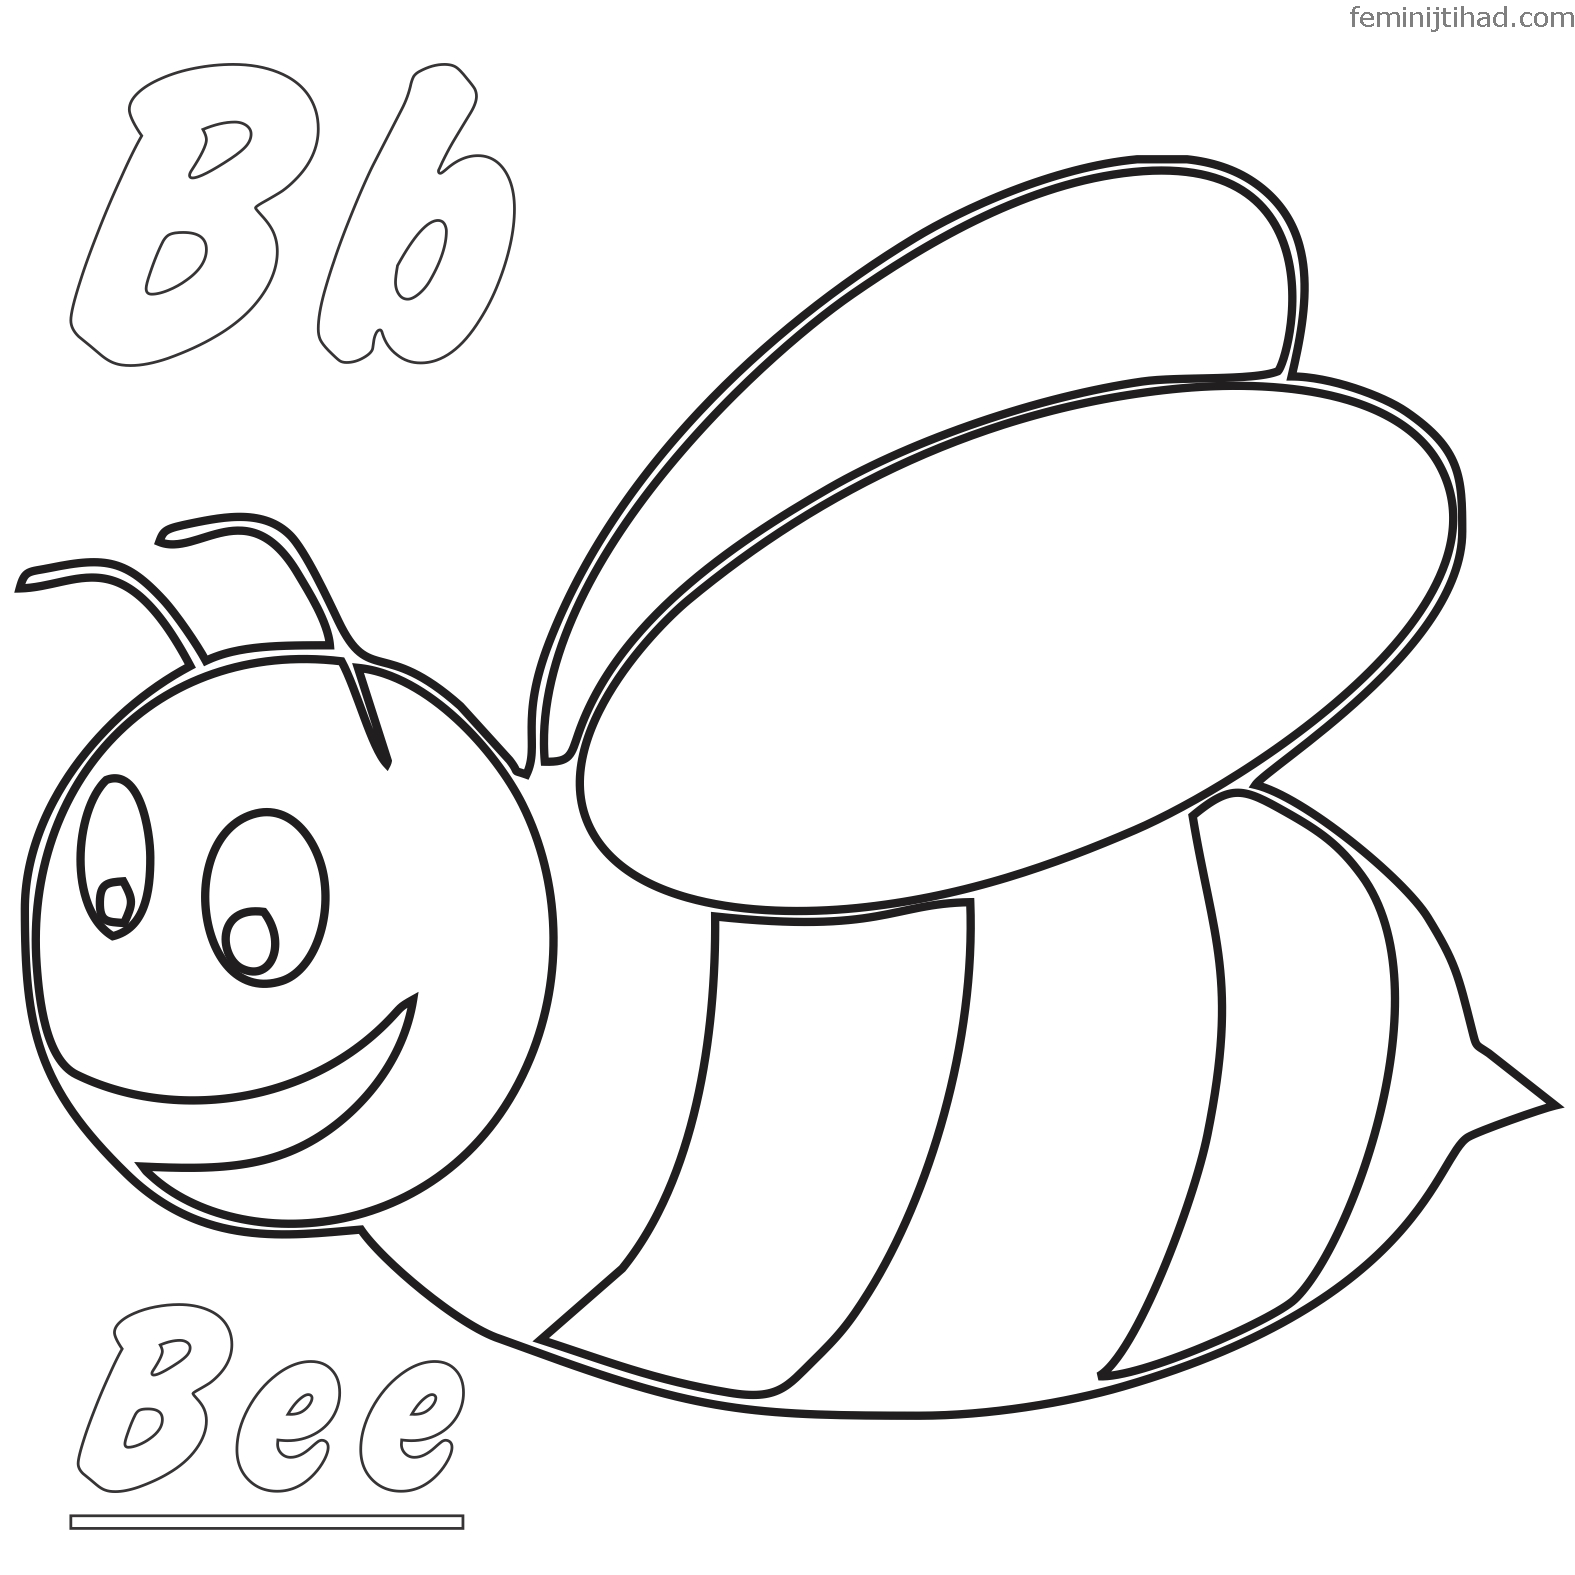 Bumblebee Coloring Pages Collection Free Coloring Sheets Bee Coloring Pages Bee Tags Free Coloring Sheets